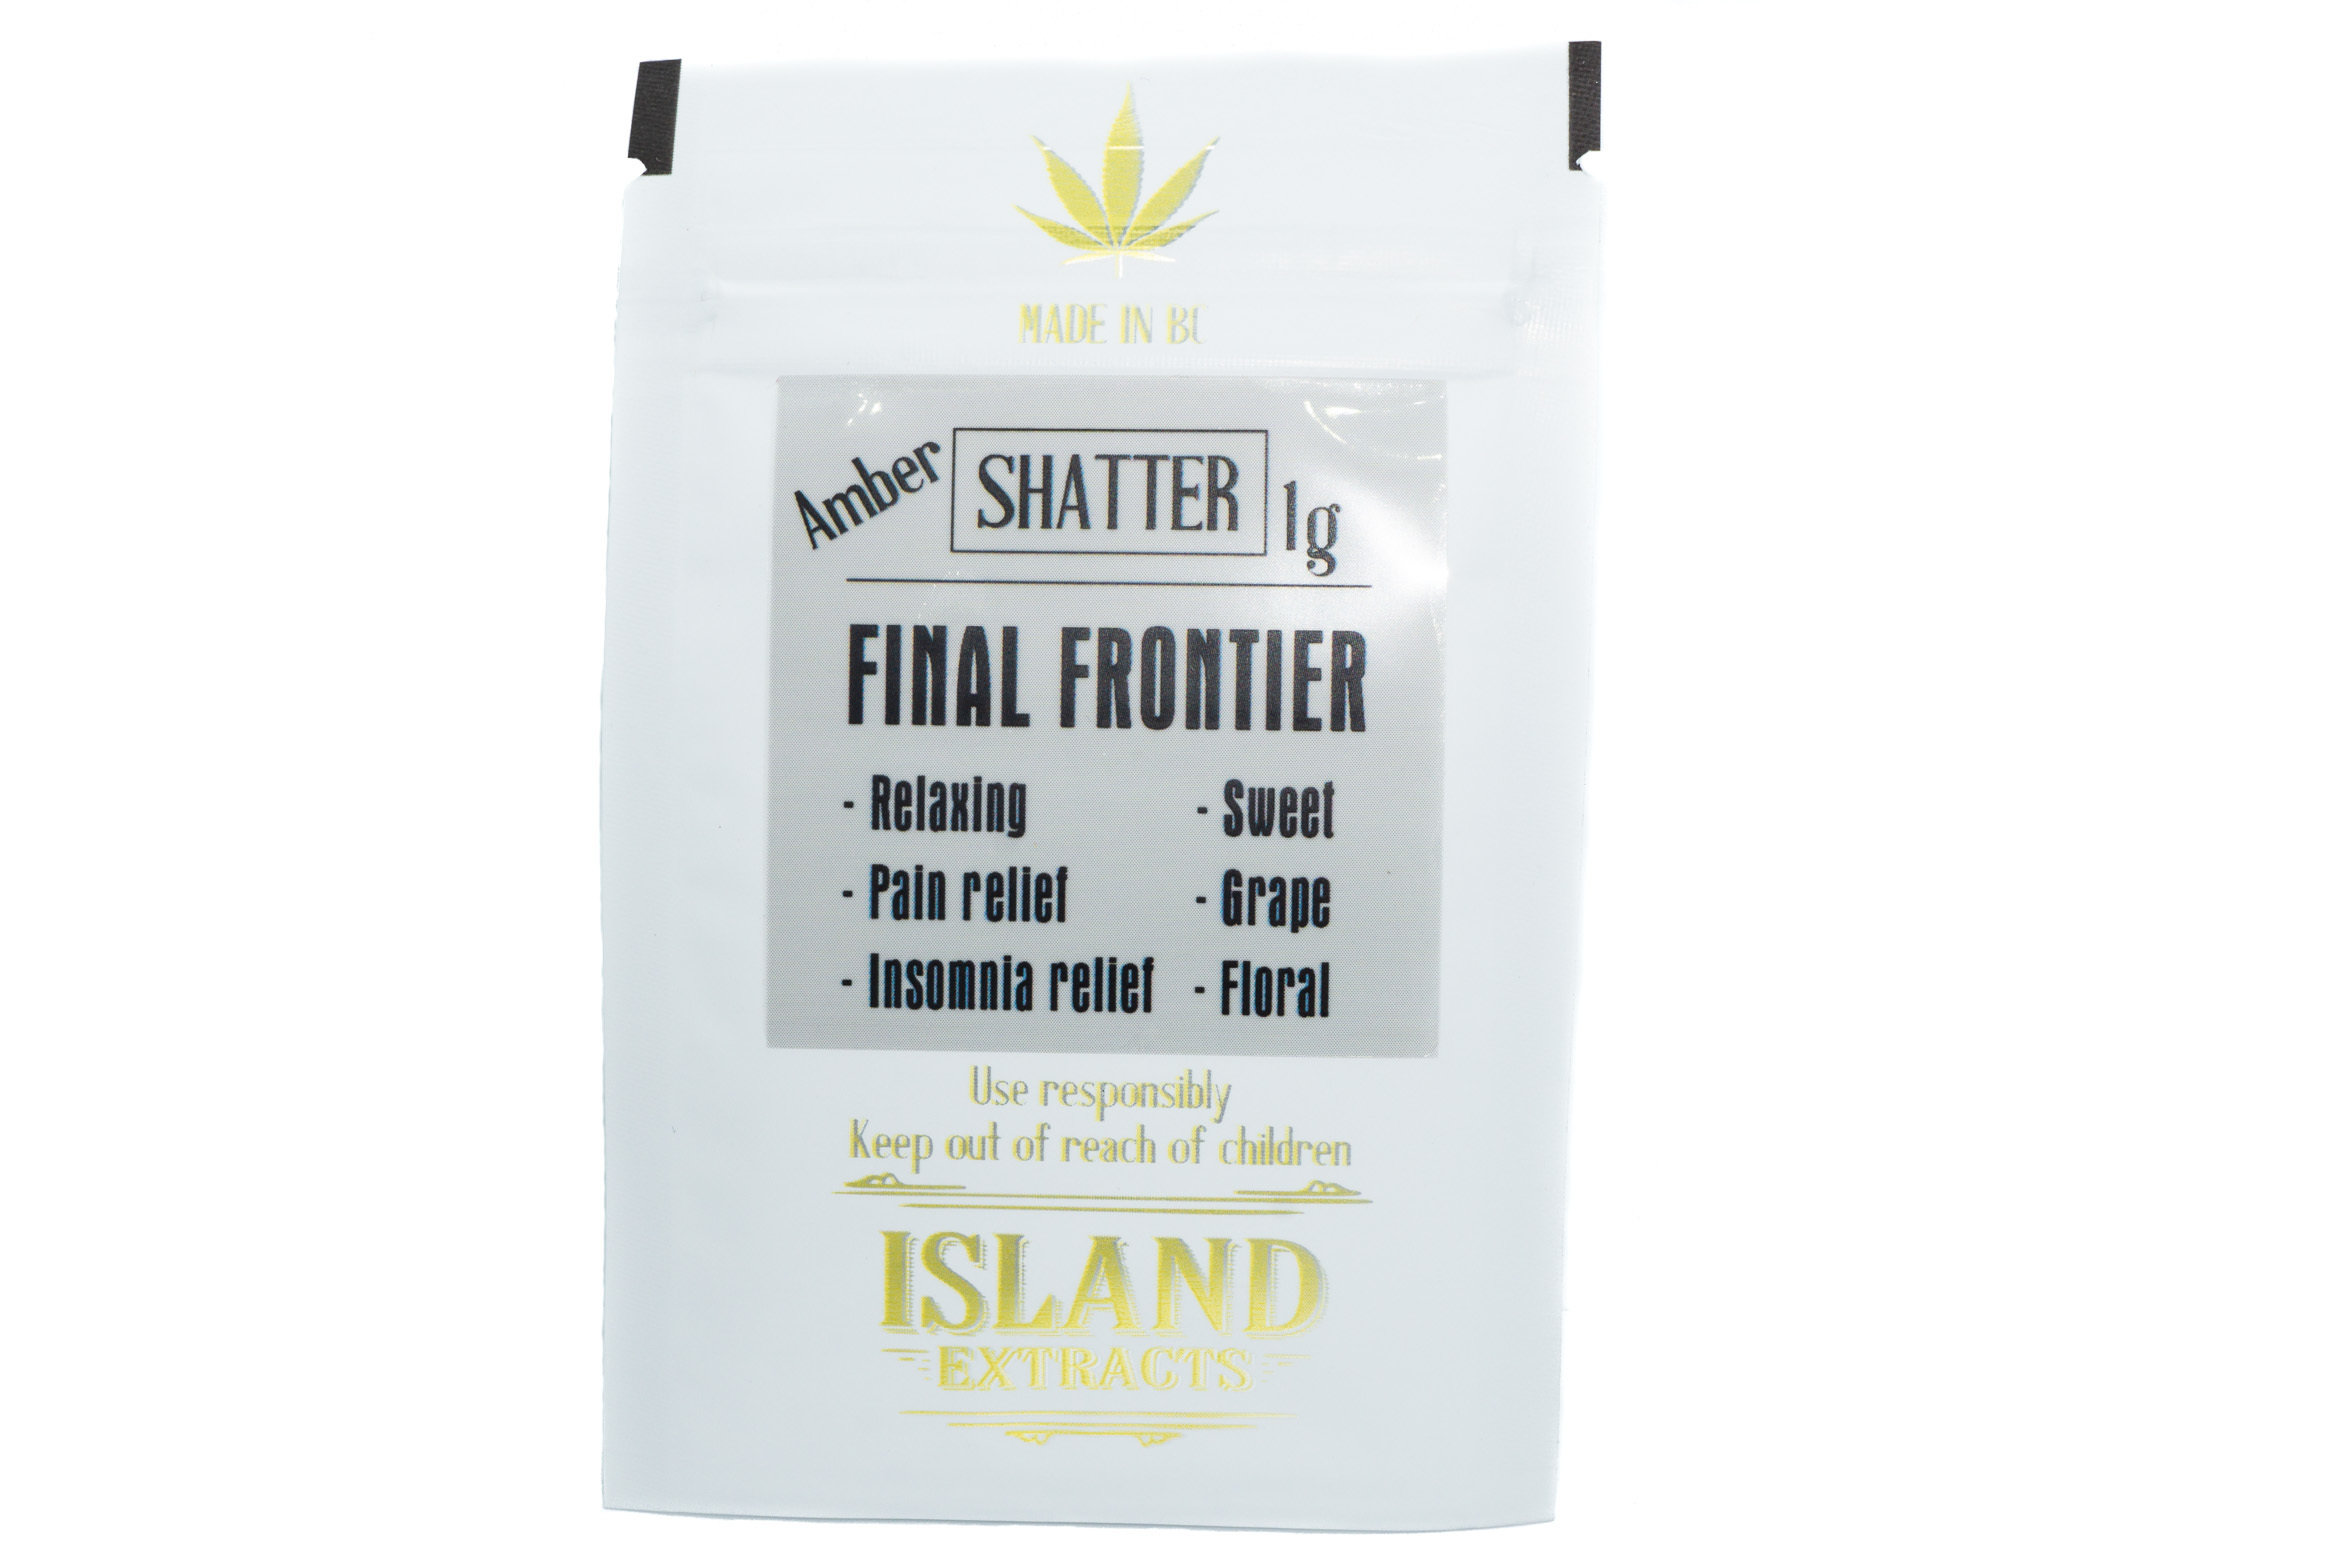 Final Frontier Shatter (Romulan & Purple Candy) (1g) by Island Extracts 01225